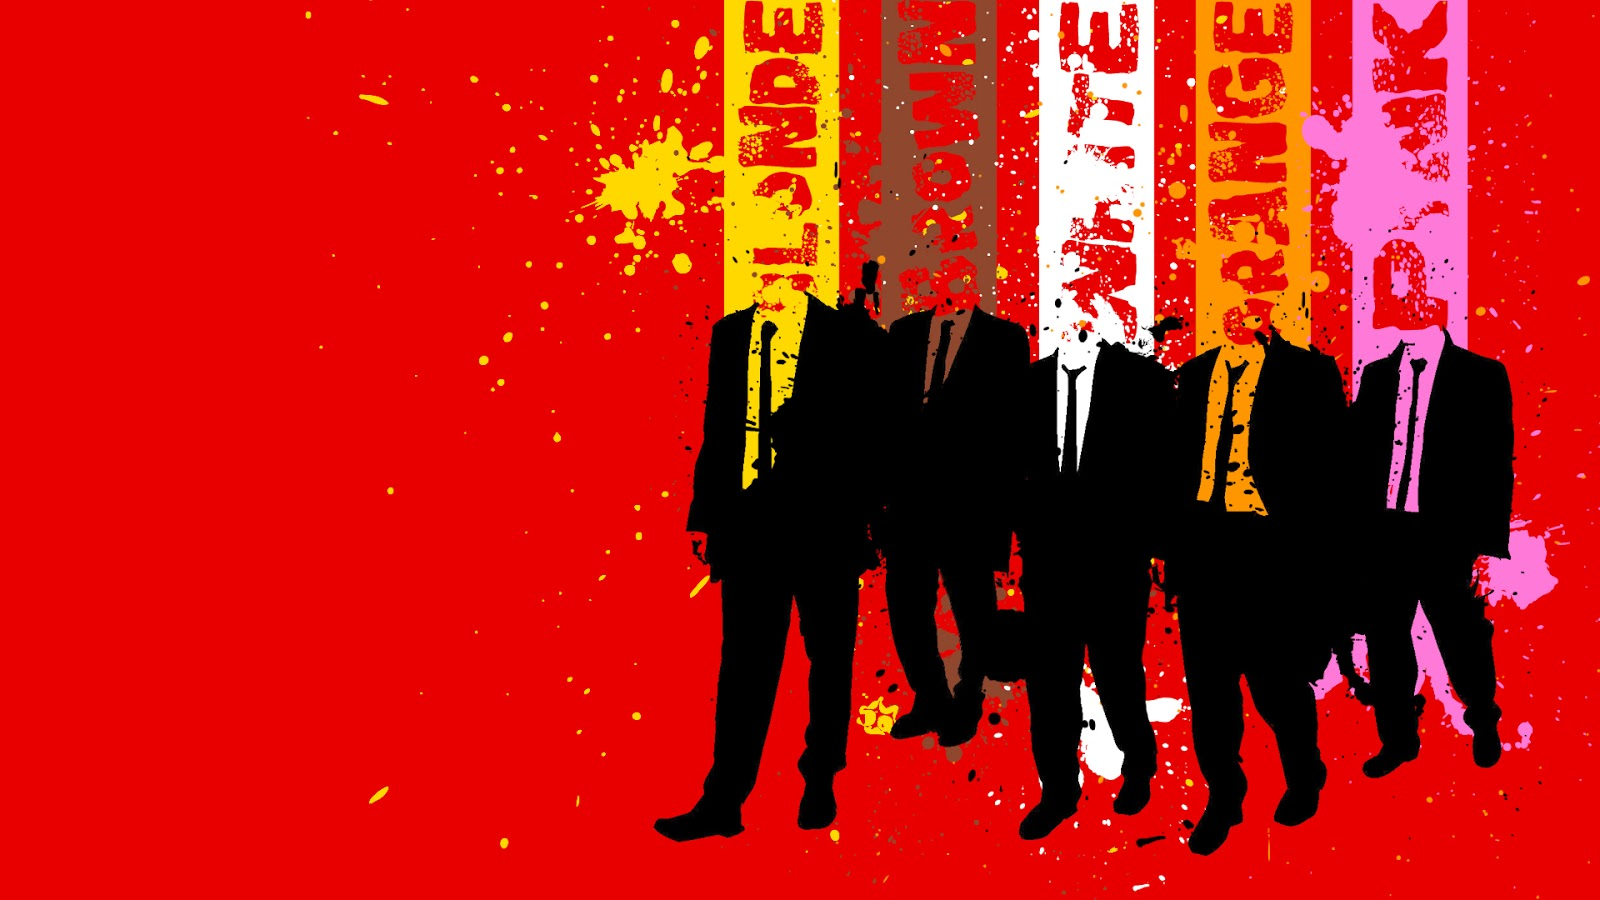 a review of reservoir dogs a film by quentin tarantino It is common for the antagonist character in quentin tarantino kill off-screen or order others to kill mr blonde from reservoir dogs quentin jerome tarantino.